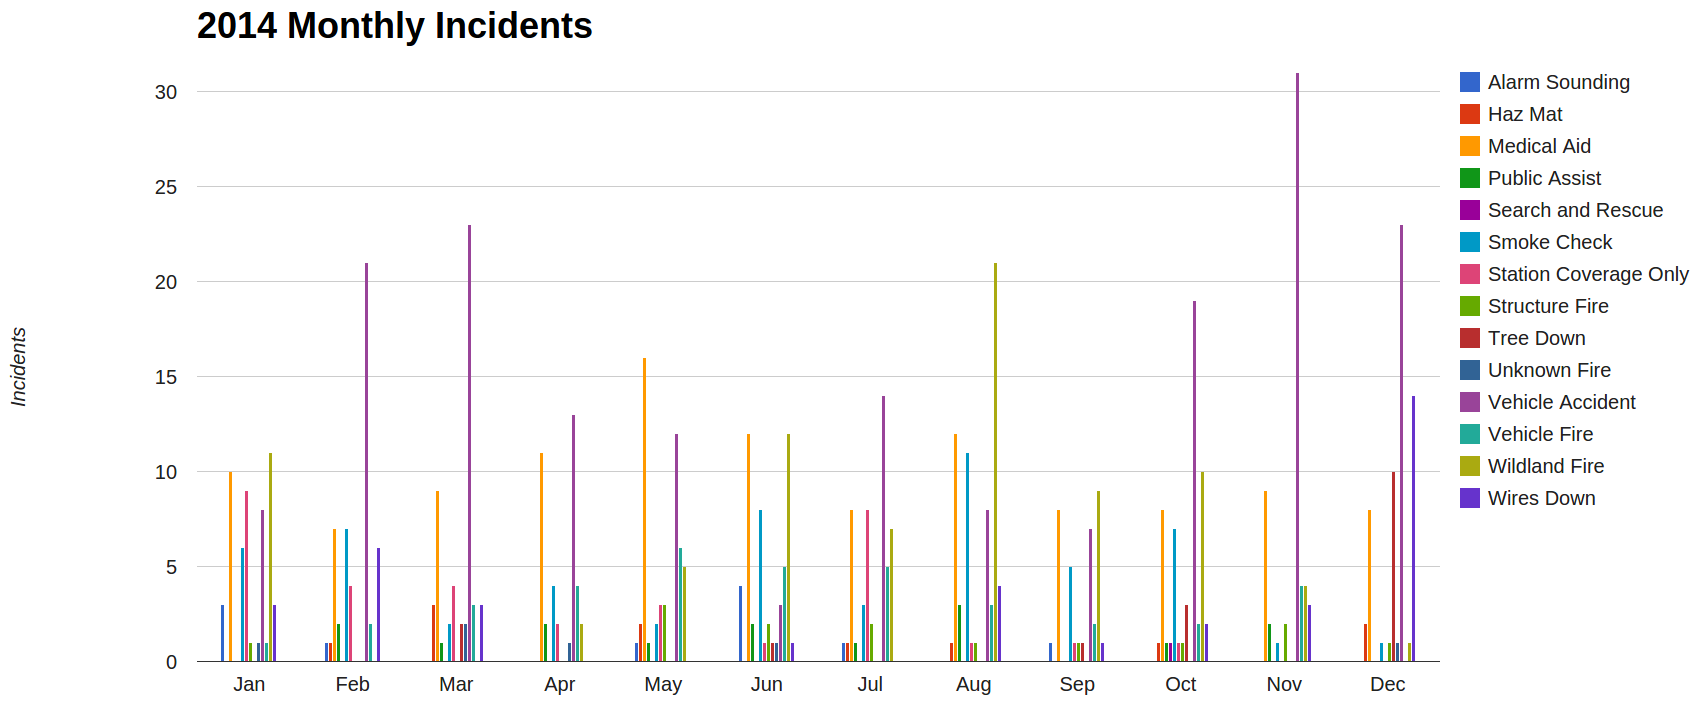 https://sites.google.com/a/lomaprietafire.org/loma-prieta-fire-rescue/home/incident-statistics/2014-incident-response-overview/2014_monthly_incidents_dec.png